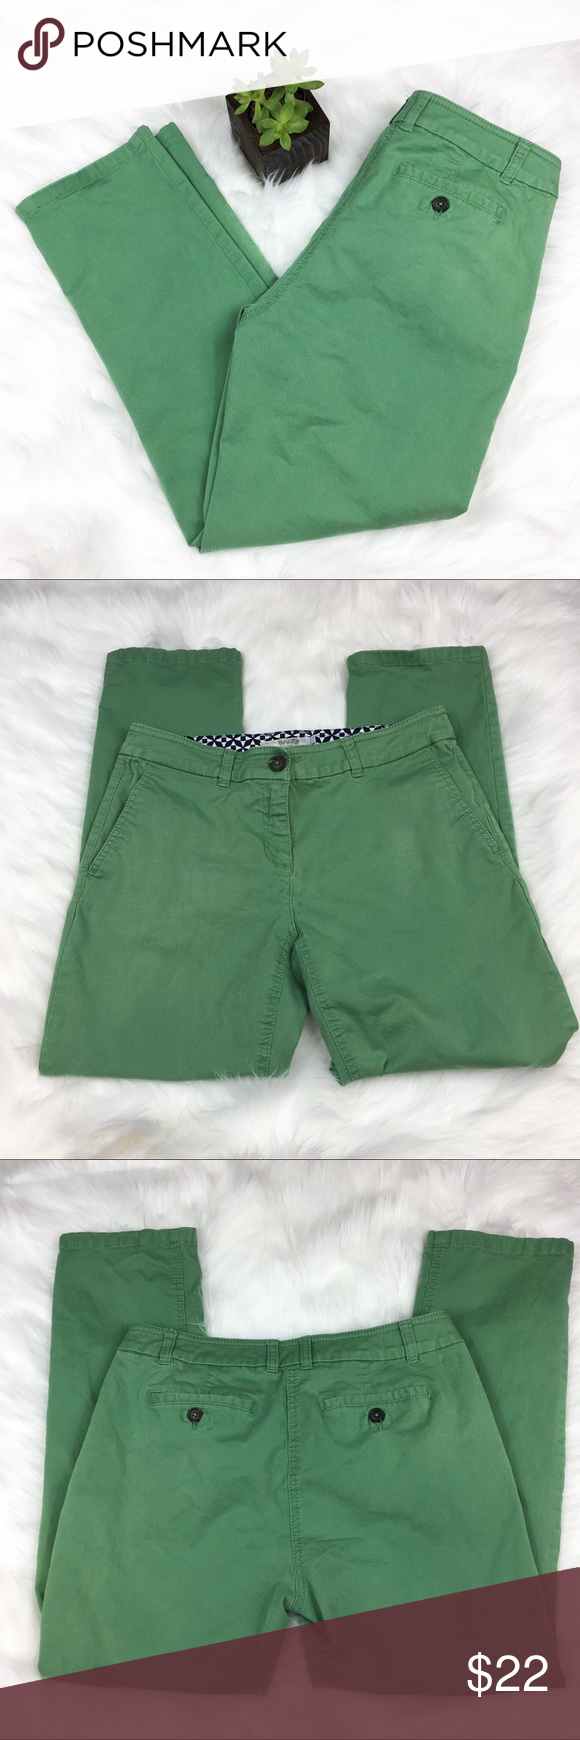 Boden Green Capris Boden Green Capris. Size 6 petite. Approximate measurements flat laid are 24' inseam and 8' rise. GUC with some wear. The right pocket does have a light worn spot as pictured. Not extremely noticed when worn. ❌No trades ❌ Modeling ❌No PayPal or off Posh transactions ❤️ I 💕Bundles ❤️Reasonable Offers PLEASE ❤️ Boden Pants Capris